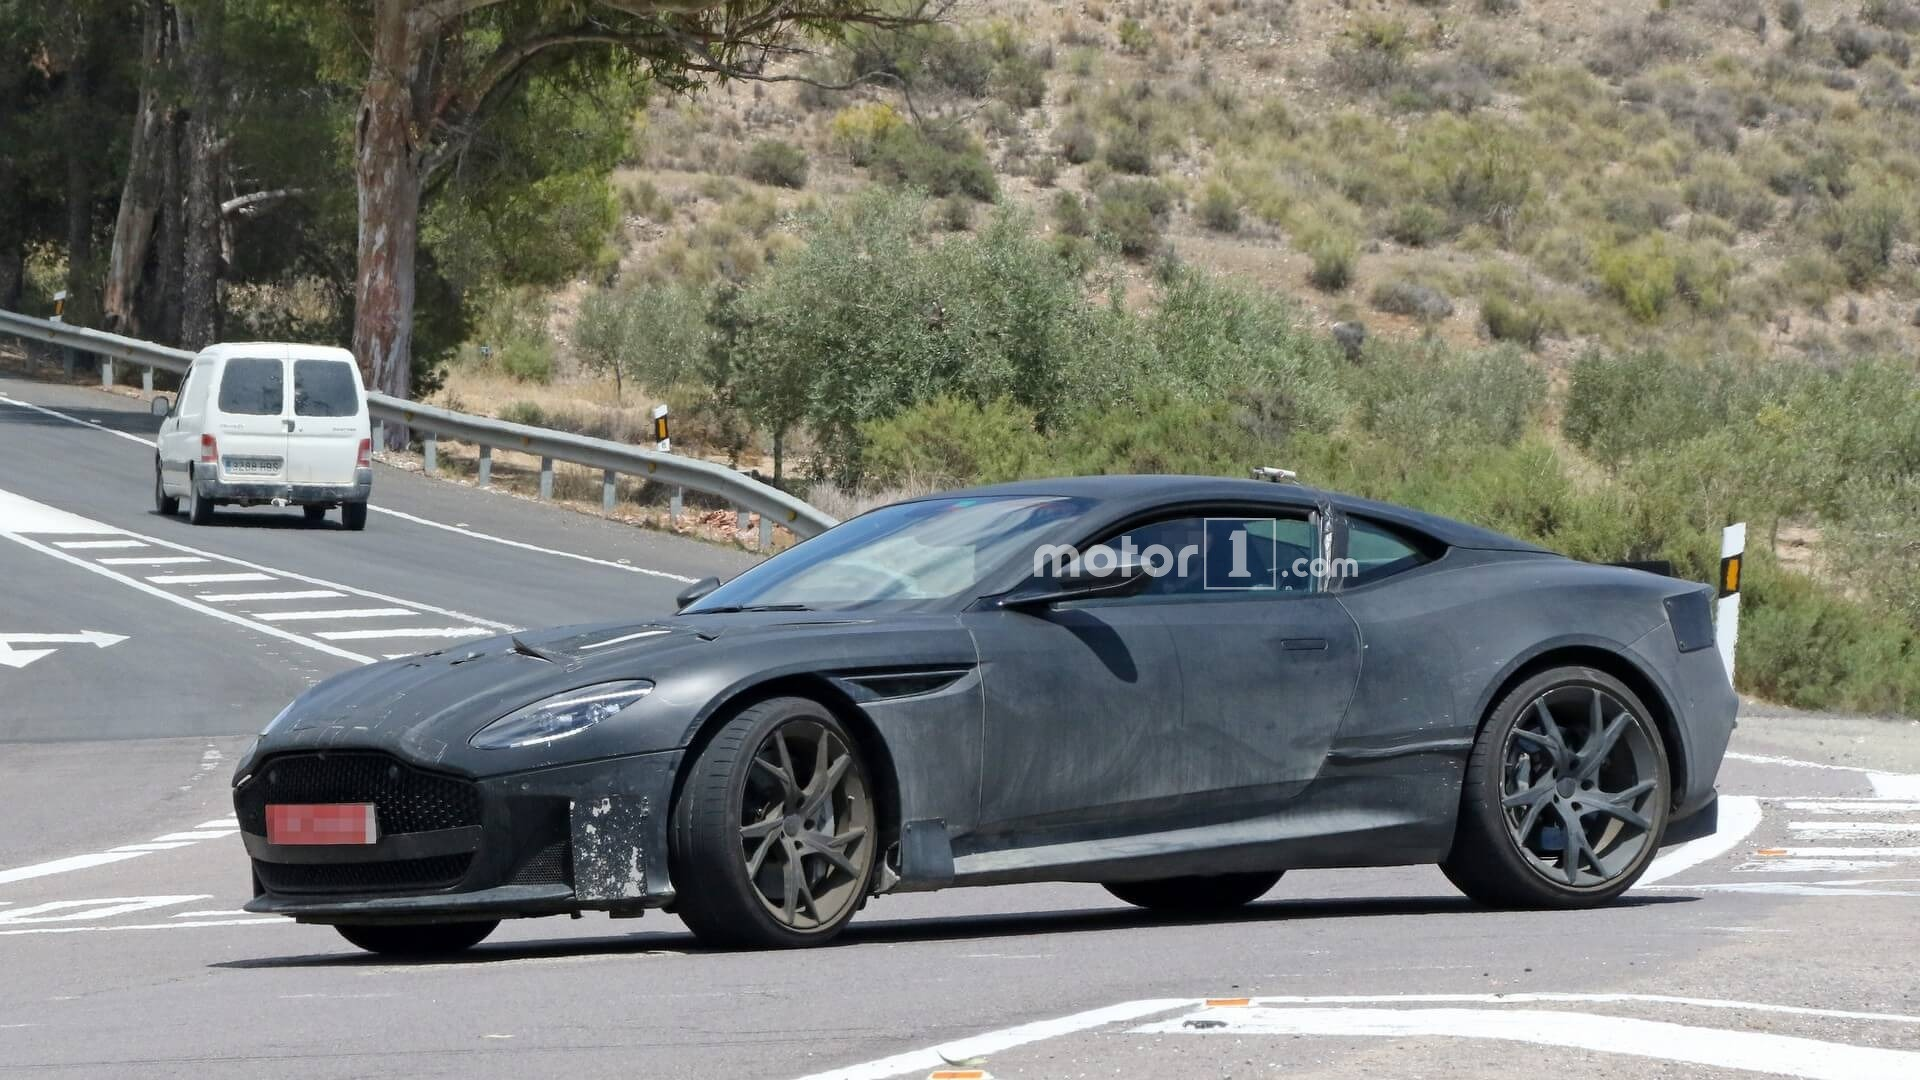 Aston Martin DBS Superleggera Spied Up Close [UPDATE] 1920x1080